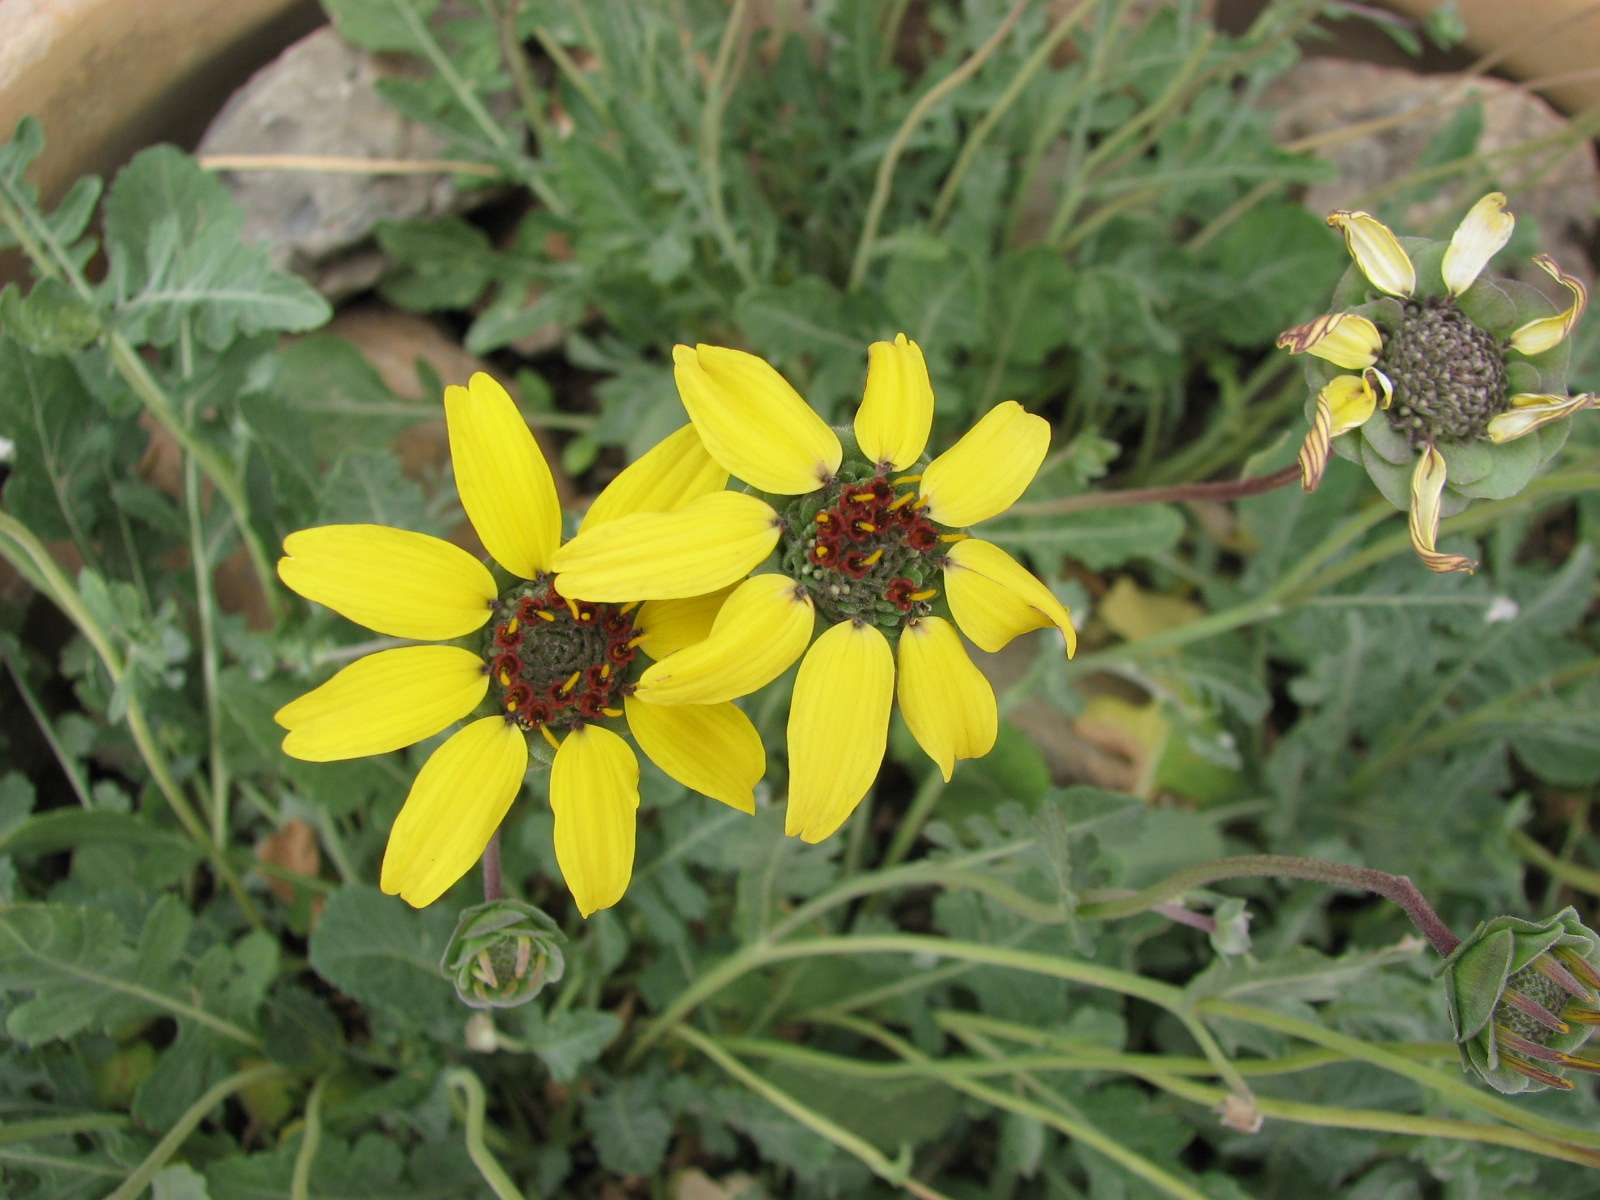 Chocolate daisy flowers with yellow petals and red and green center